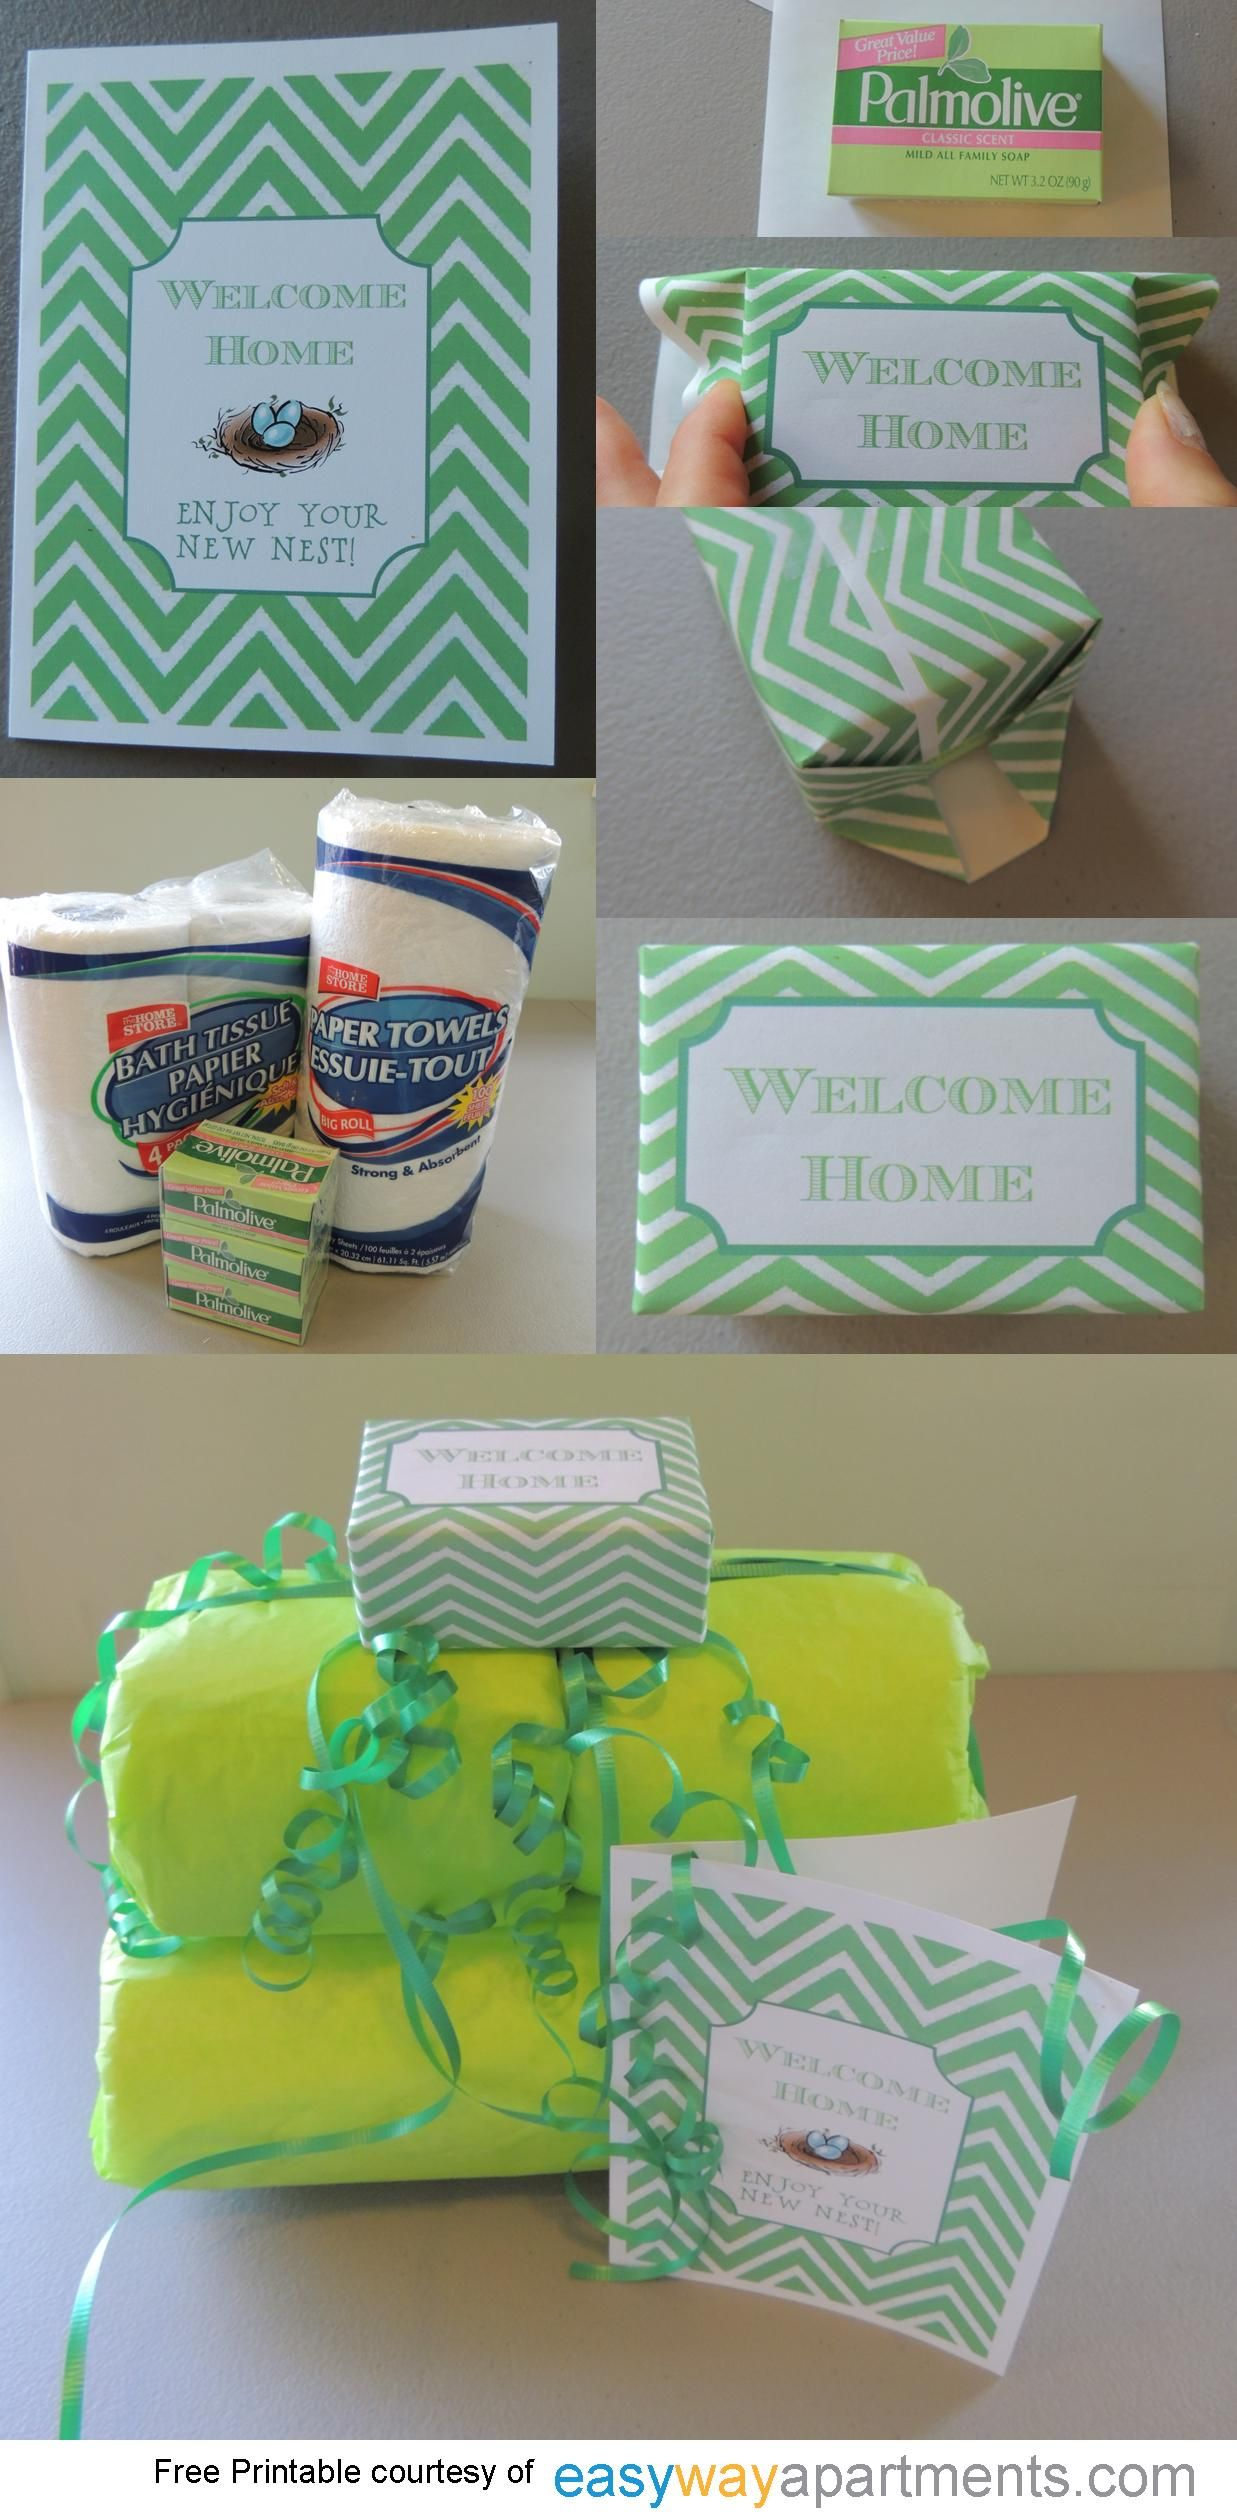 Housewarming Gifts Ideas Inexpensive Housewarming Gift Decorating Pinterest Moving Gifts